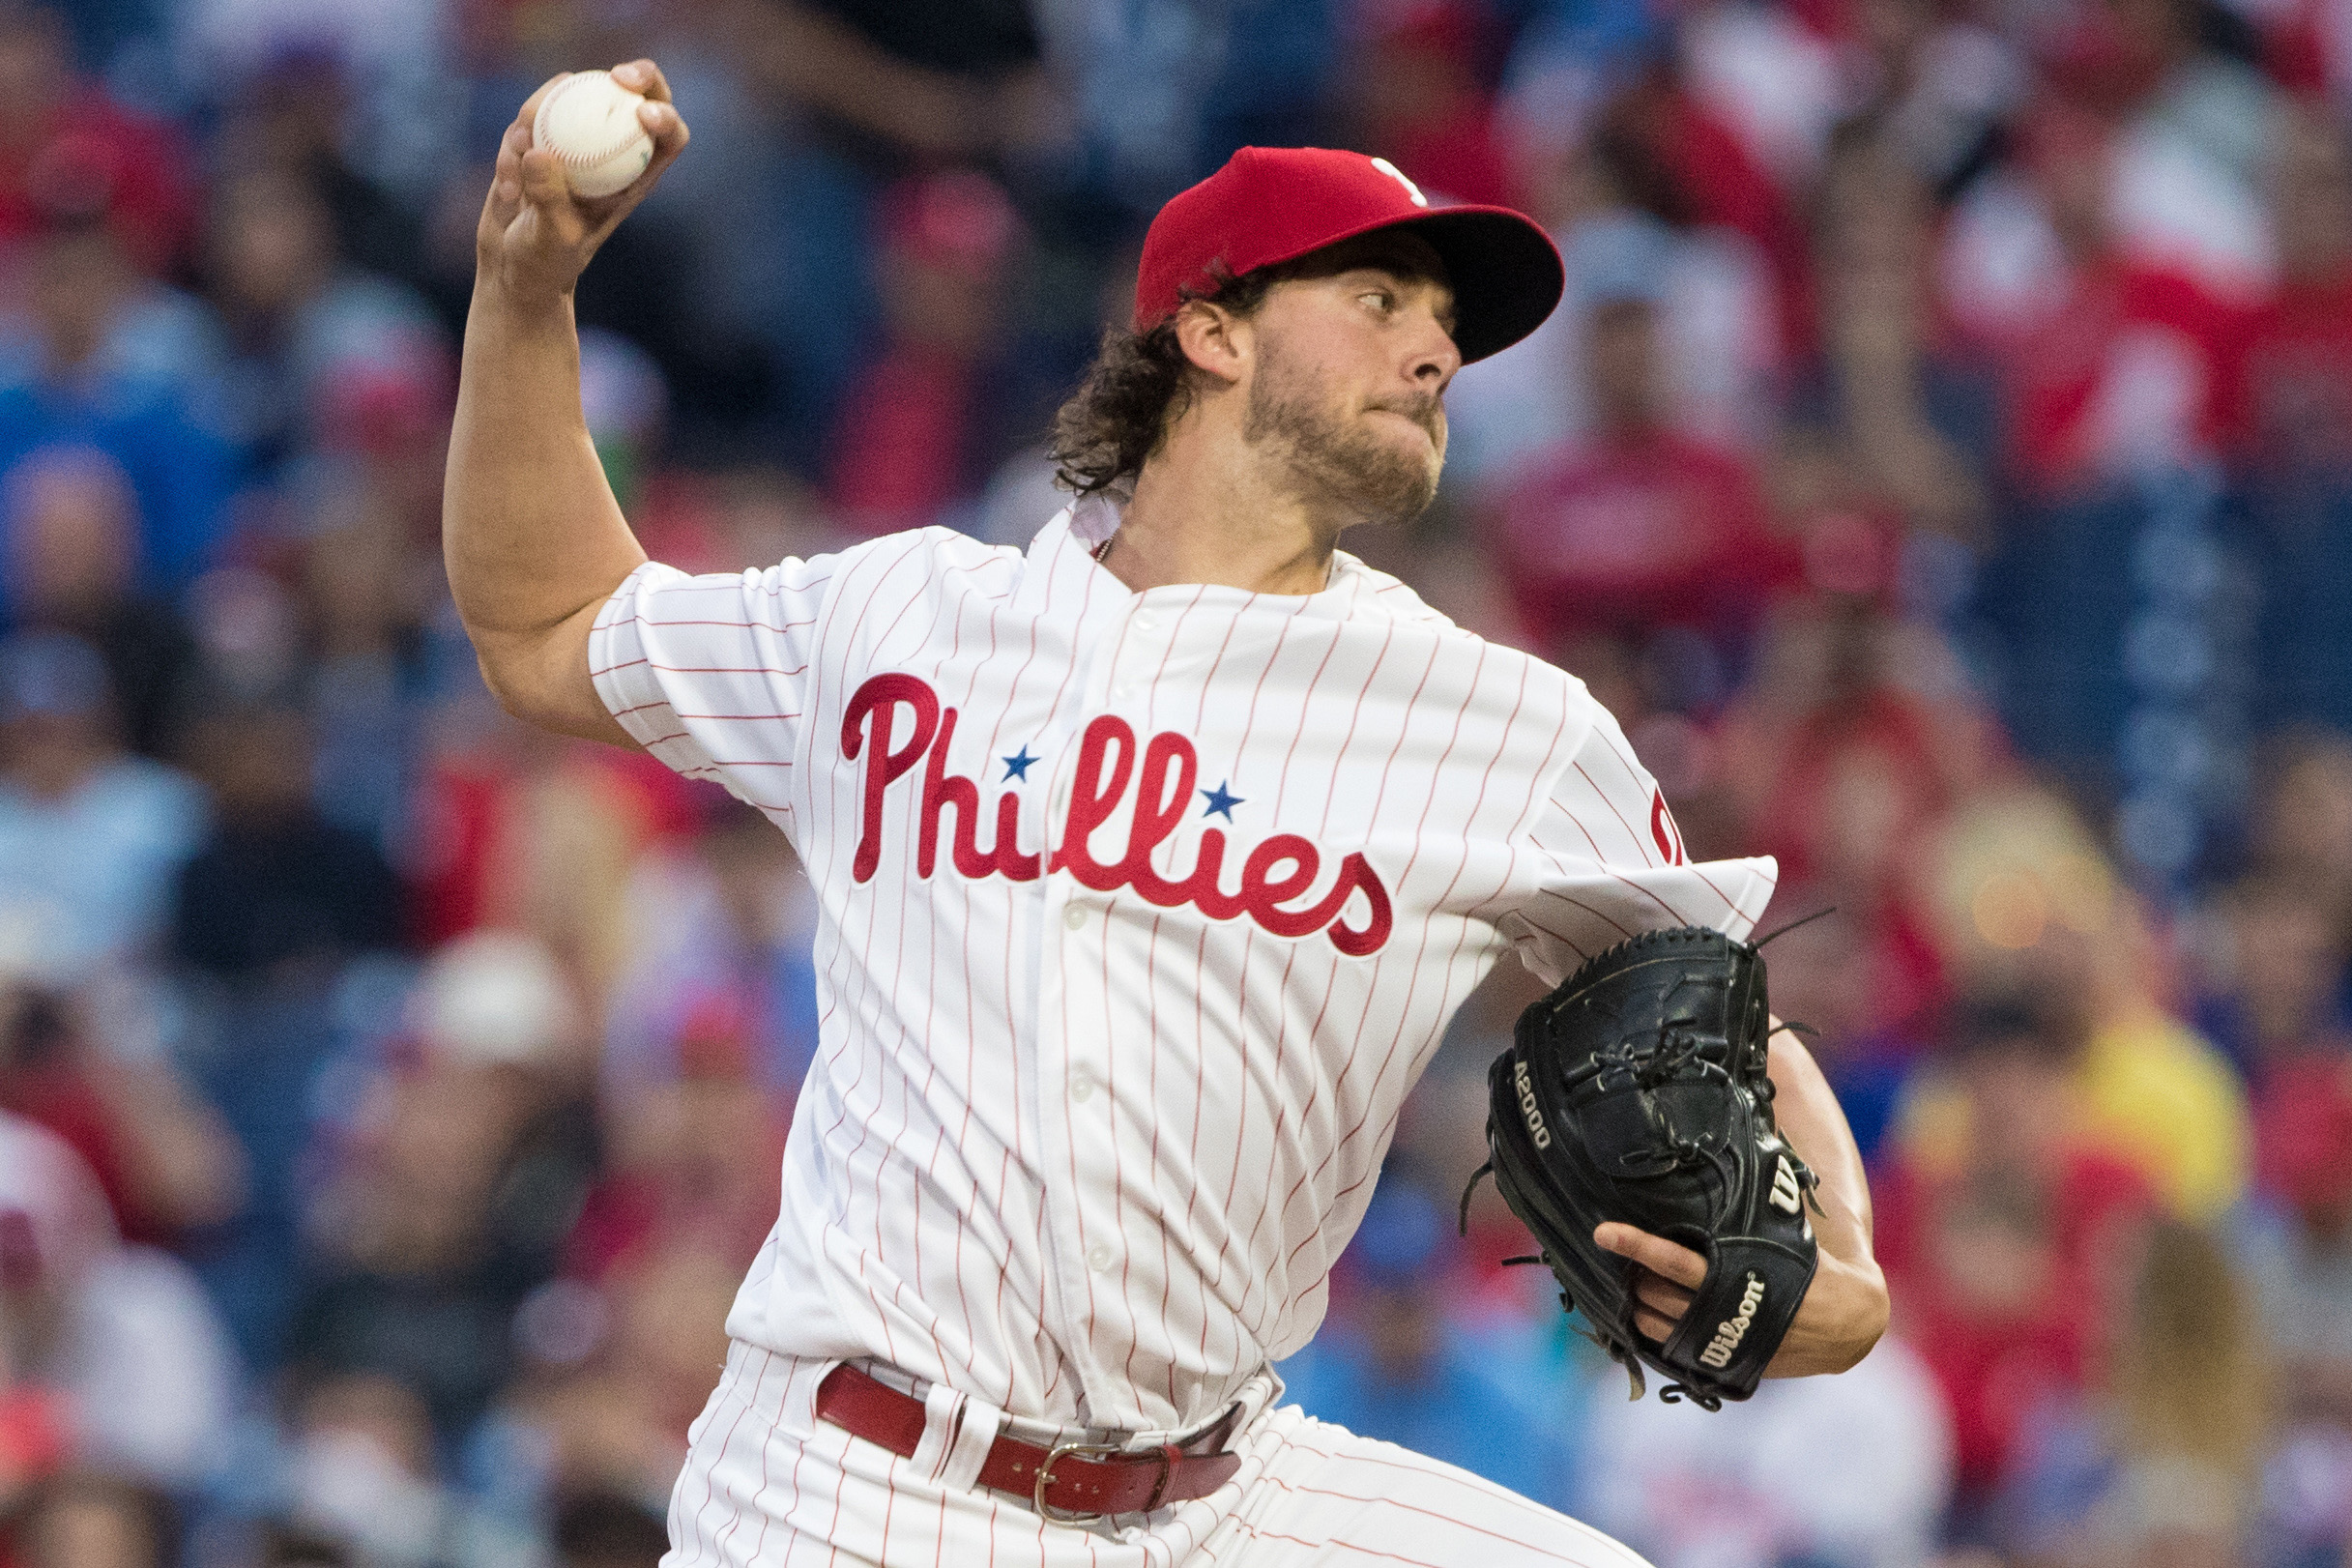 Early Pitch Mix Changes for the Phillies